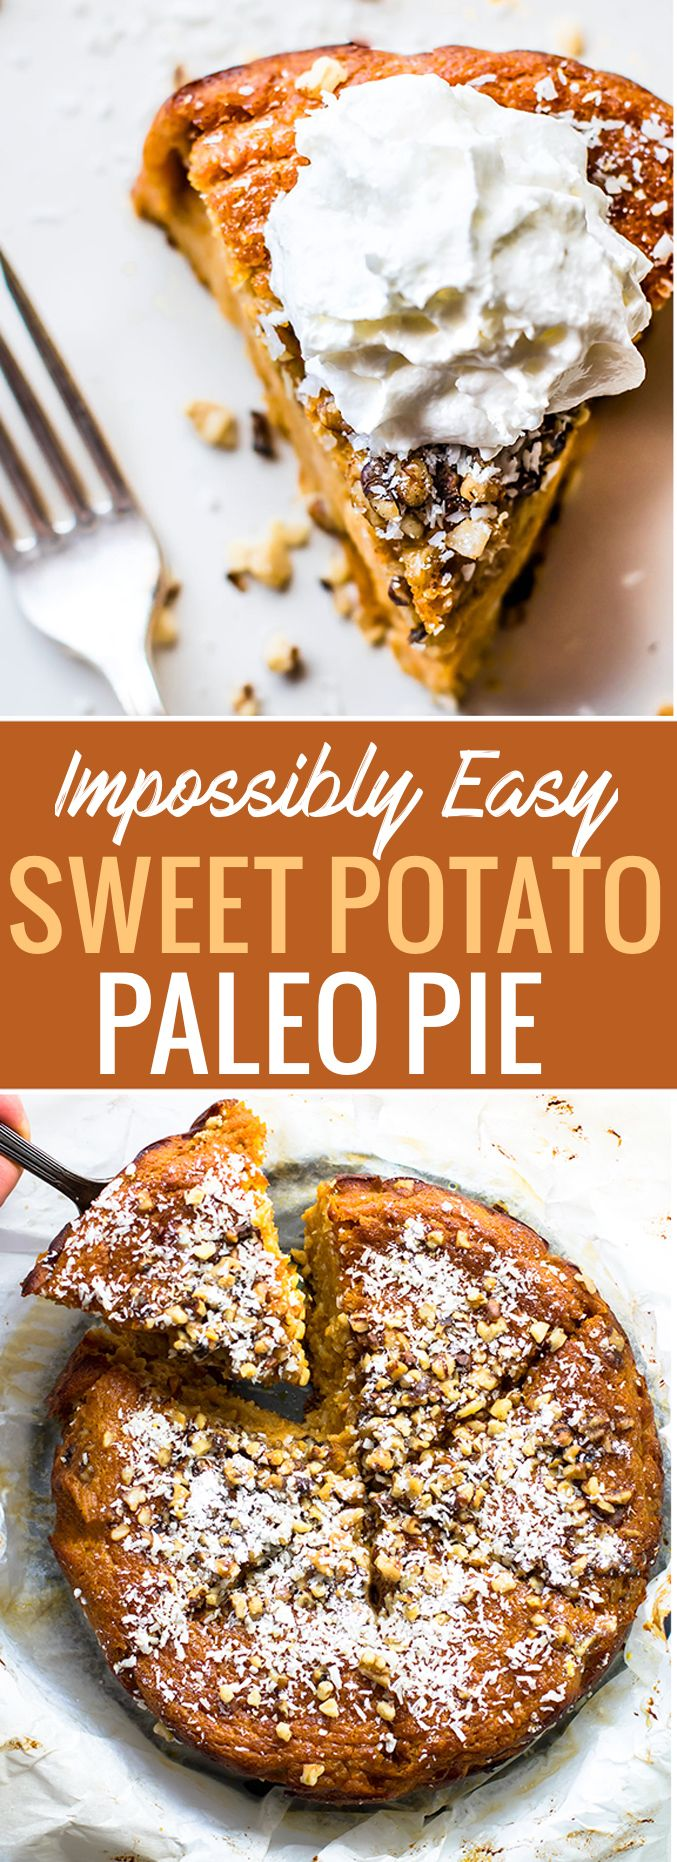 Impossibly EASY Paleo Sweet Potato Pie with coconut! A Paleo sweet potato pie recipe that's IMPOSSIBLE to mess up! Made with simple healthy ingredients! A paleo sweet potato pie that miraculously forms its own crust while baking. www.cottercrunch.com